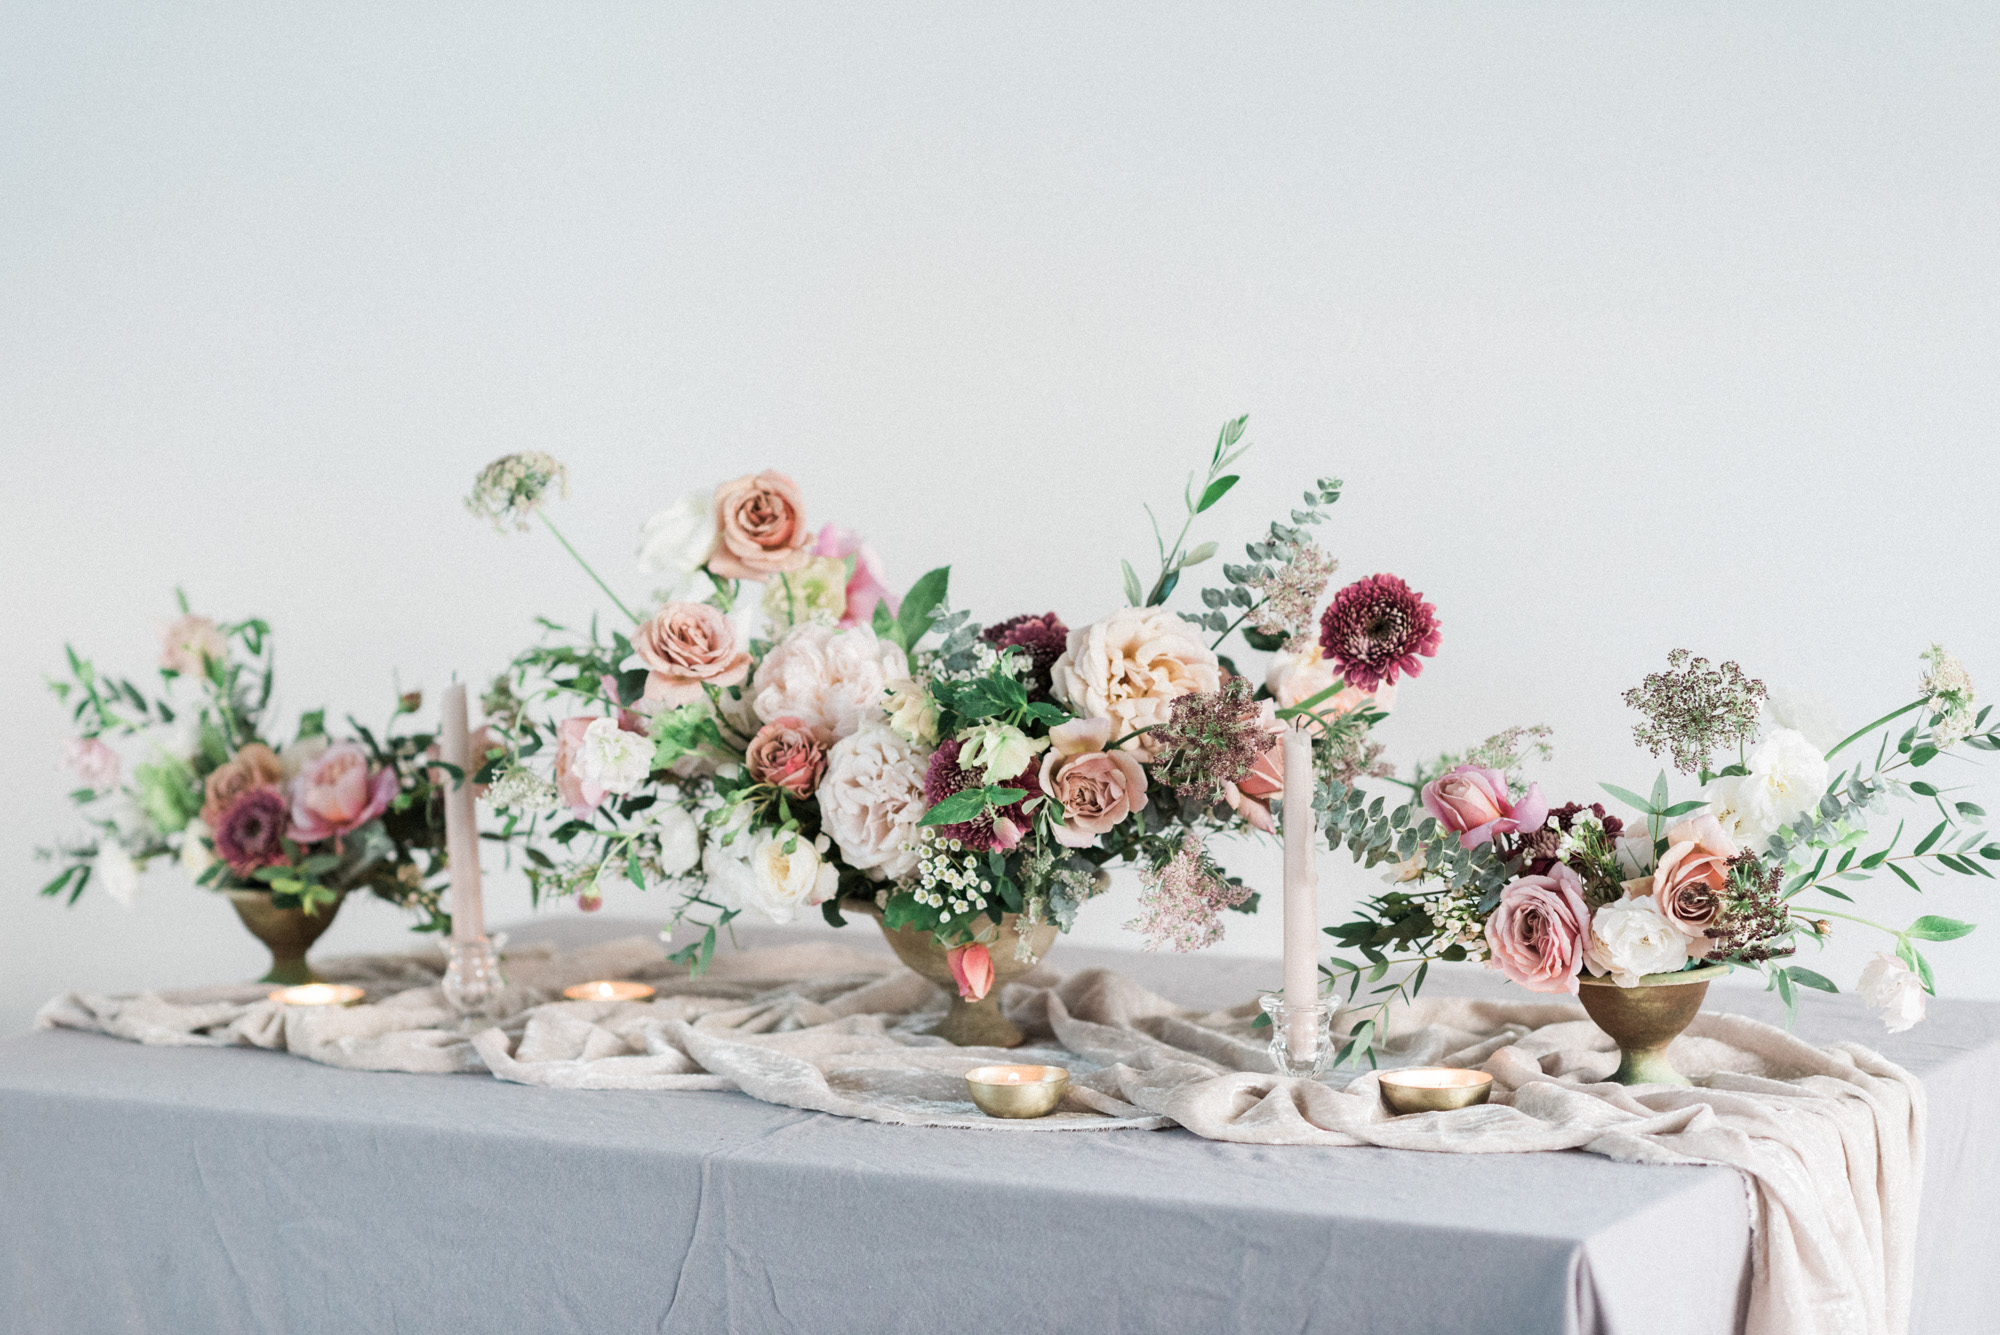 lush garden flowers and table scape for wedding